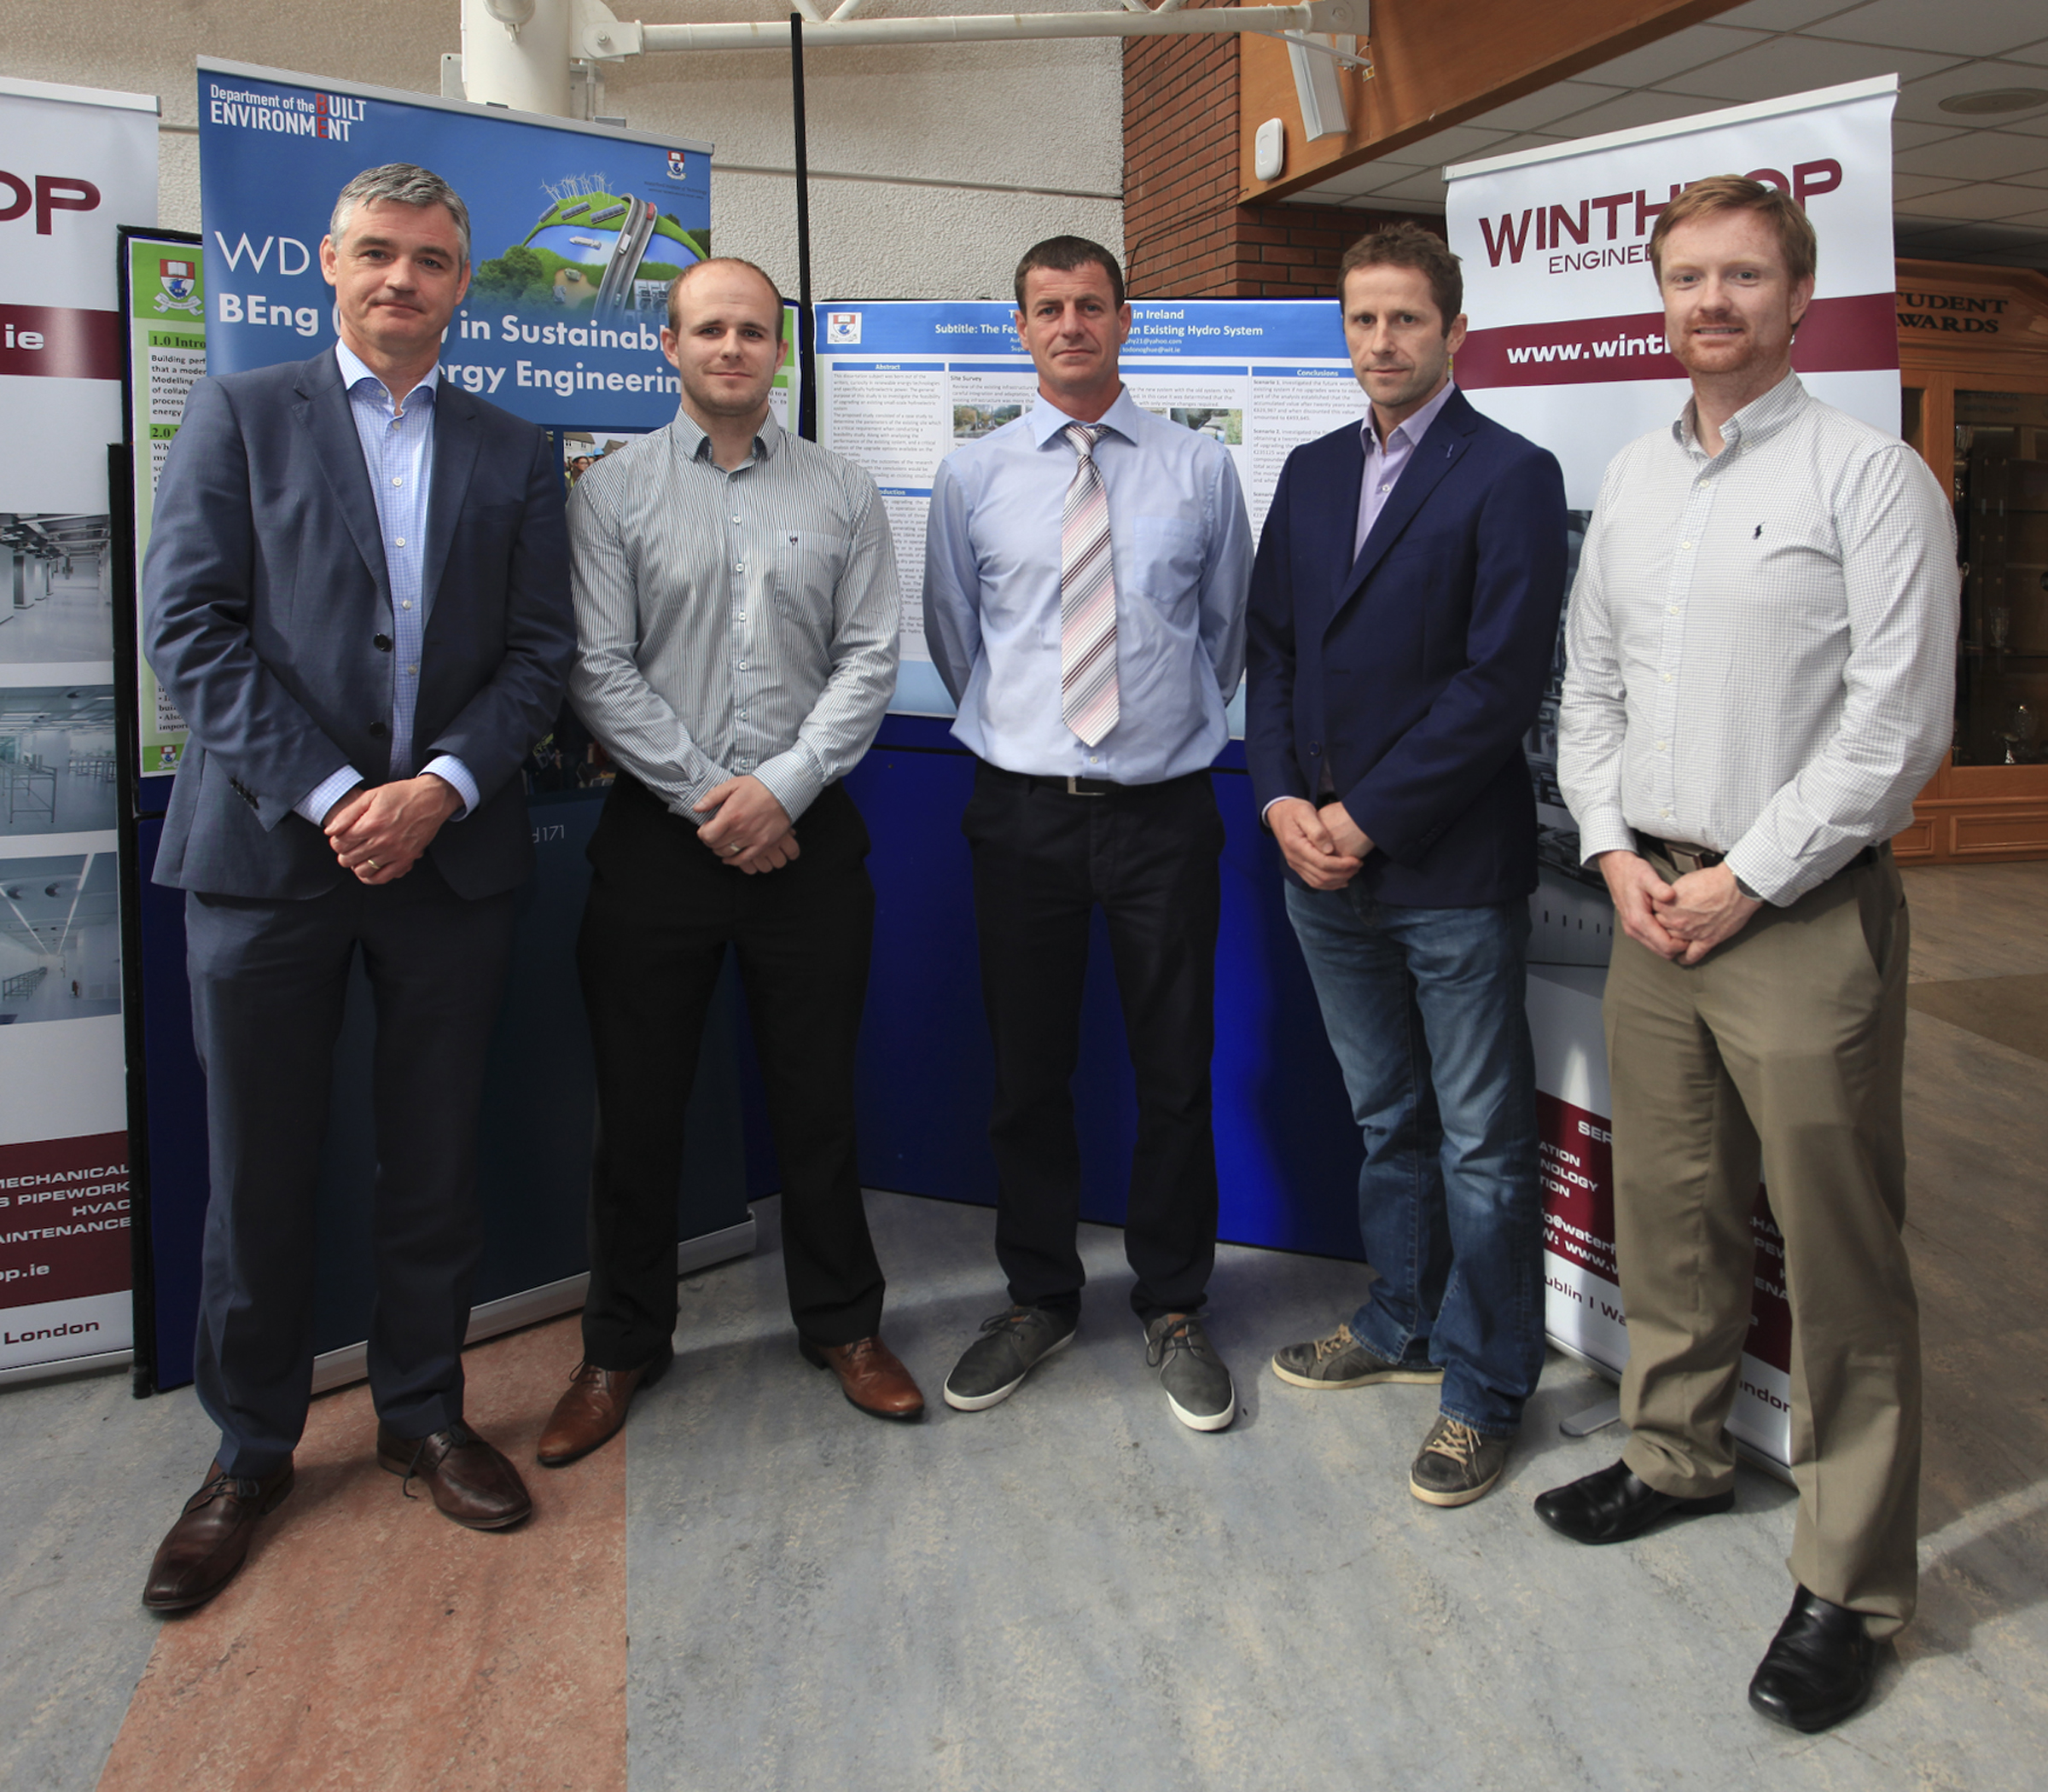 Ger O'Leary, Managing Director of Winthrop Engineering Waterford, sponsor of Sustainable Energy Engineering Awards 2016 at WIT; Gary Widger, Project Manager at Winthrop Waterford, Stuart Murphy, Tramore 1st place winner of Winthrop Sustainable Energy Awards at WIT; Colm Tynan, Lecturer in Sustainable Energy at WIT; Derek Sinnott, Head of the Department of the Built Environment at WIT.